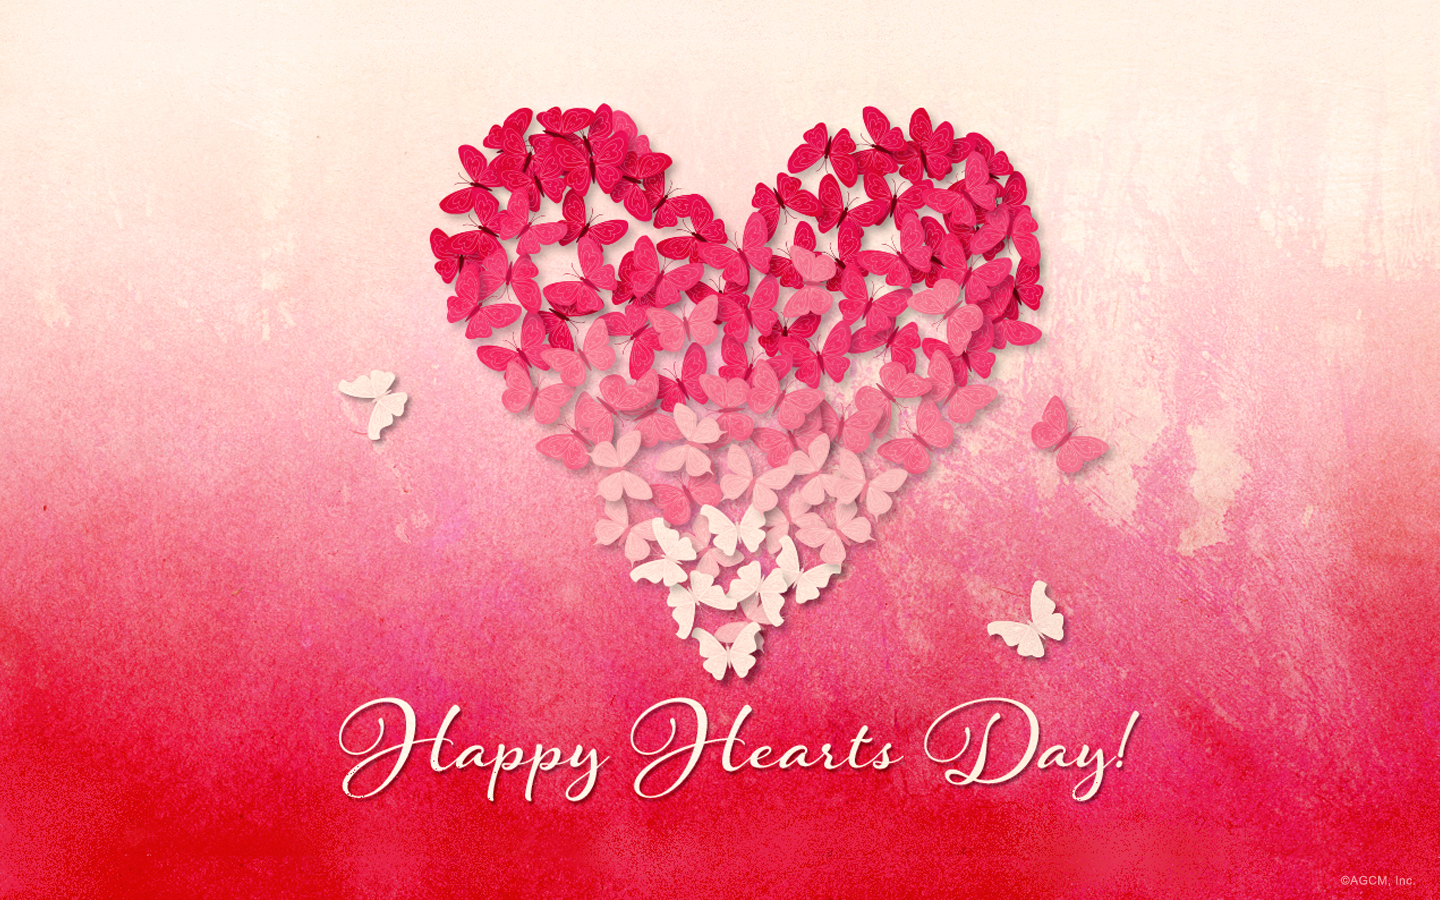 Valentines Day Free Desktop Wallpaper American Greetings Blog